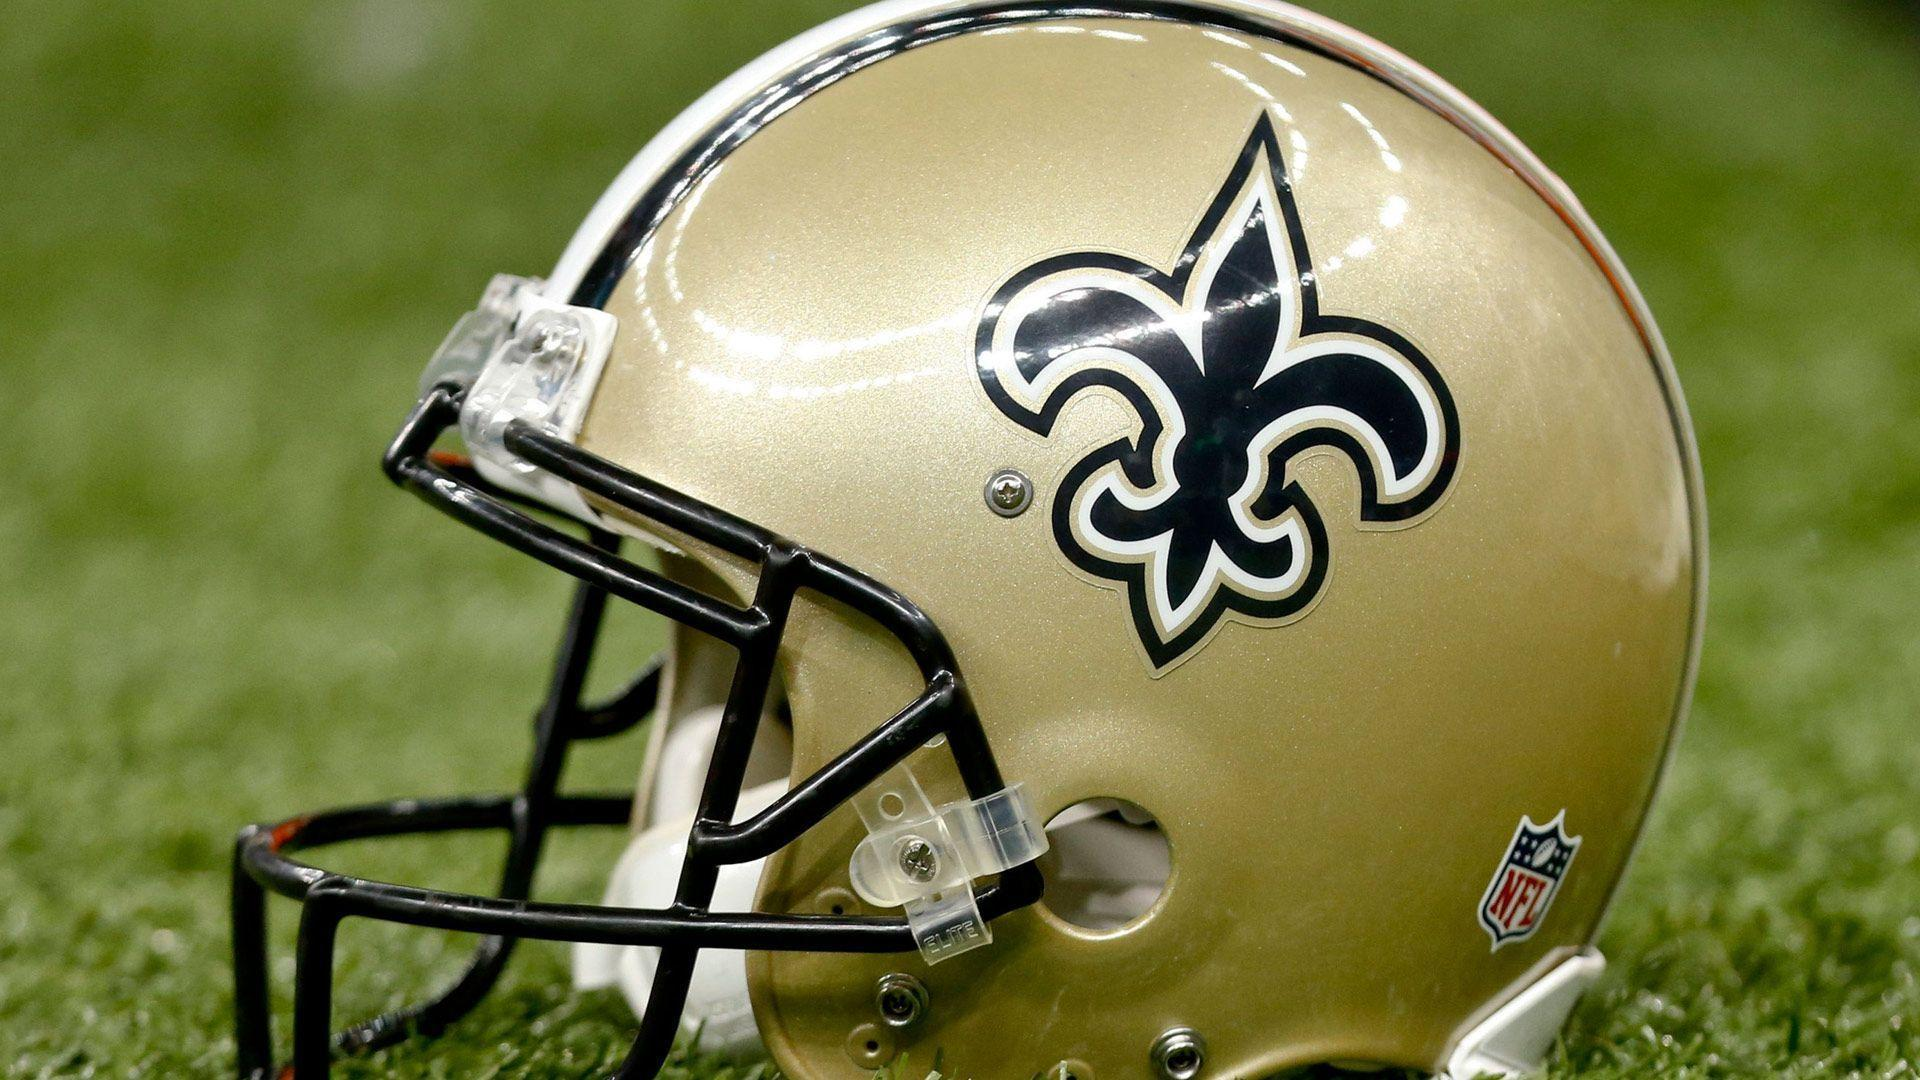 New Orleans Saints wallpapers – Free full hd wallpapers for 1080p